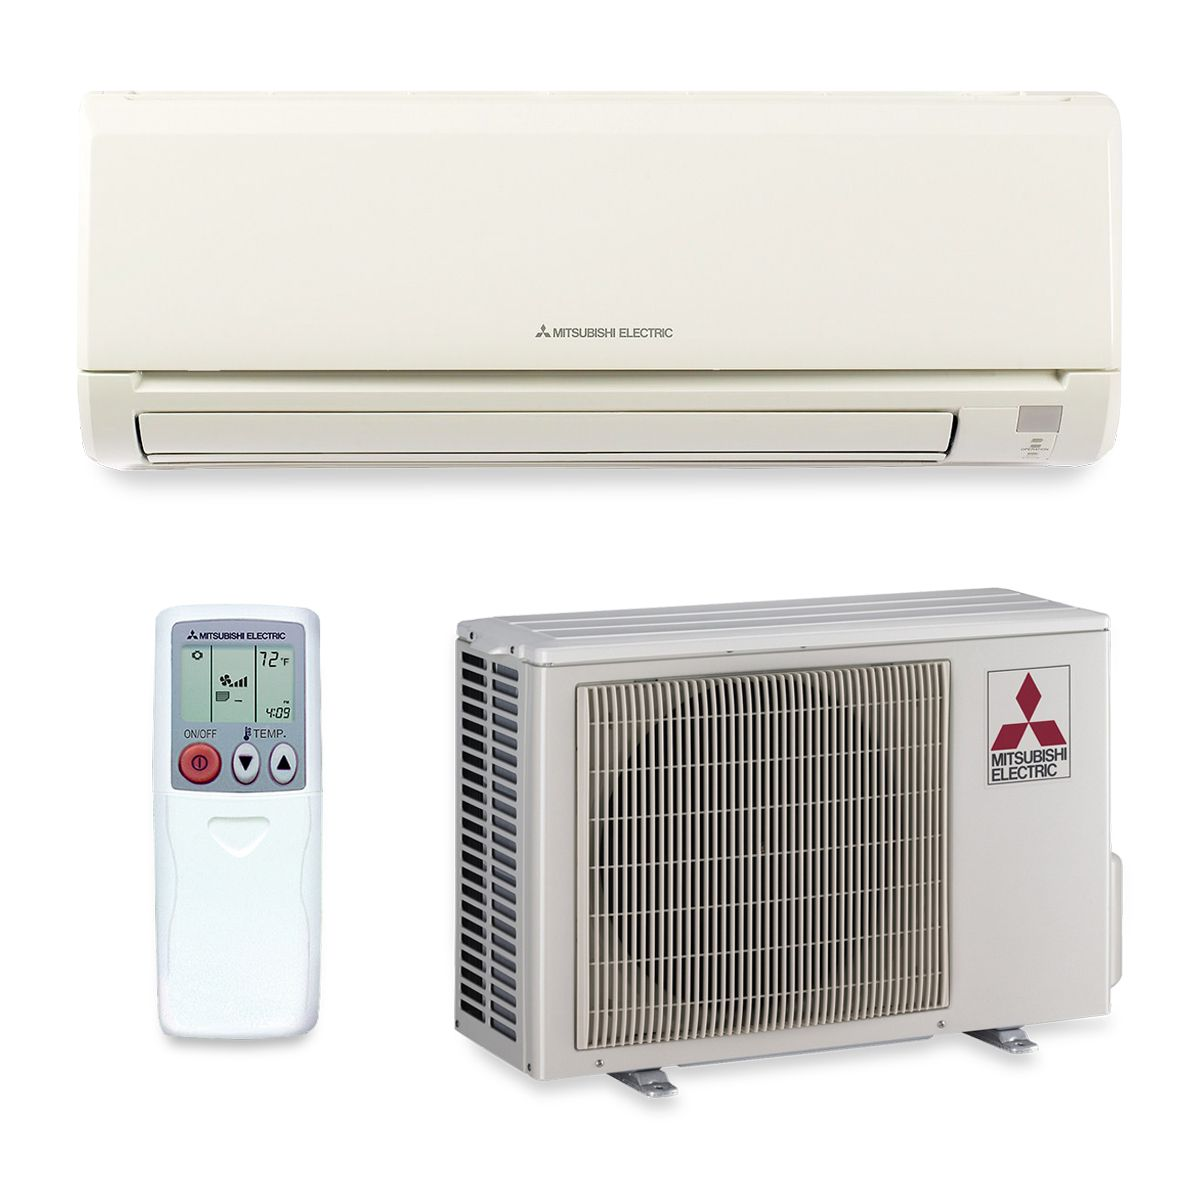 Mitsubishi Split Air Conditioner User Manual - The Best Air 2018